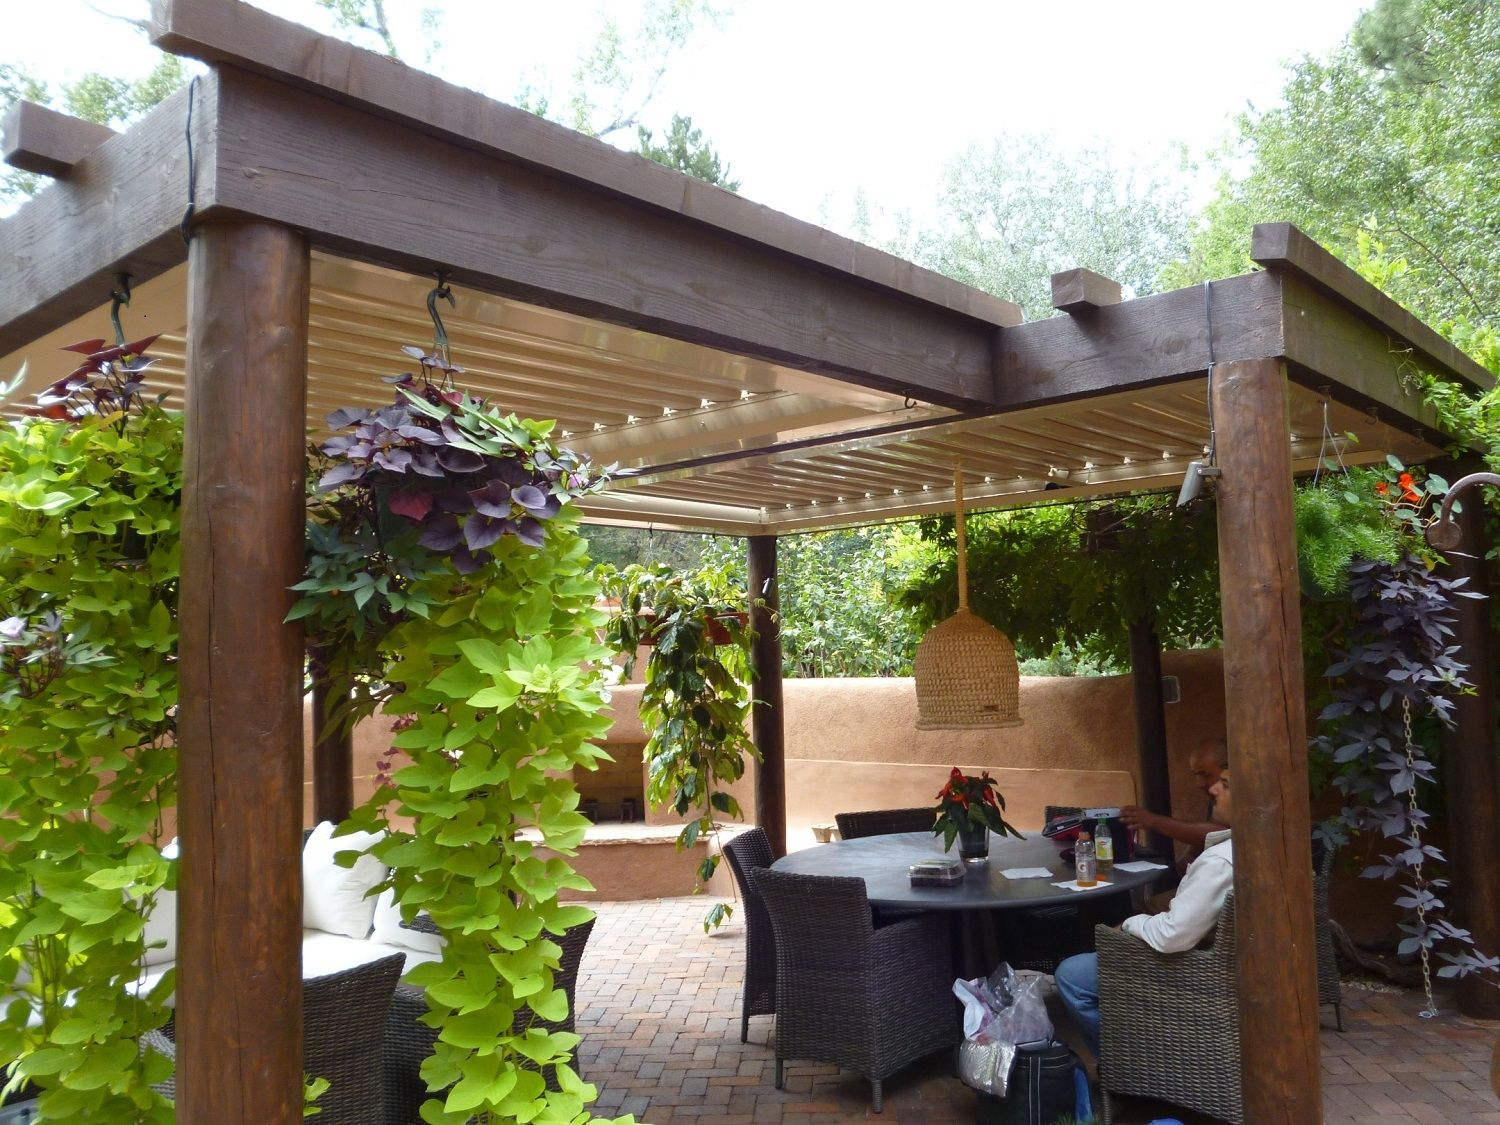 Decoration Wood Patio Cover Awning Patio Cover Ideas Wood Canopy within Diy Wood Patio Cover